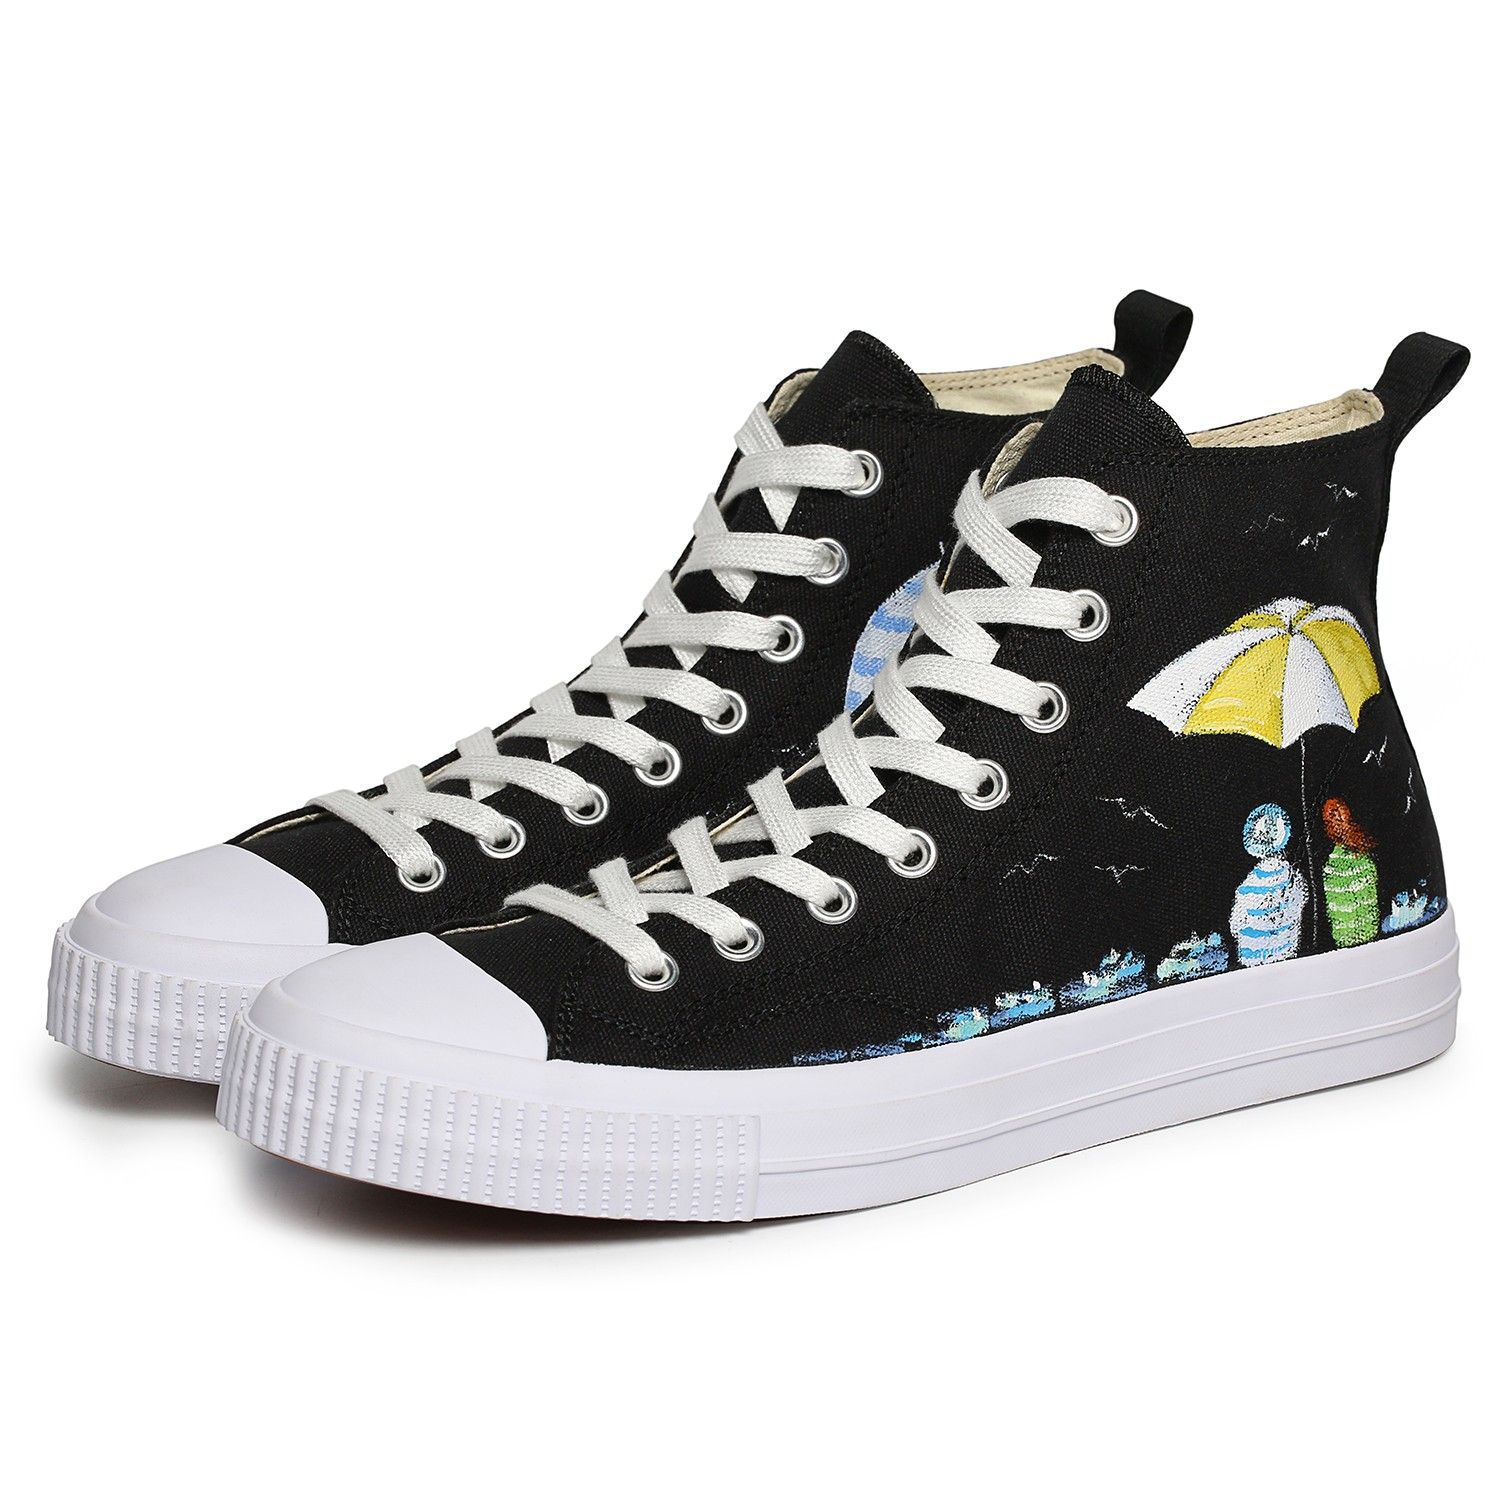 Omine WP2005 Flat Shoes Men High Top Color Painted Shoes Canvas - White US 8